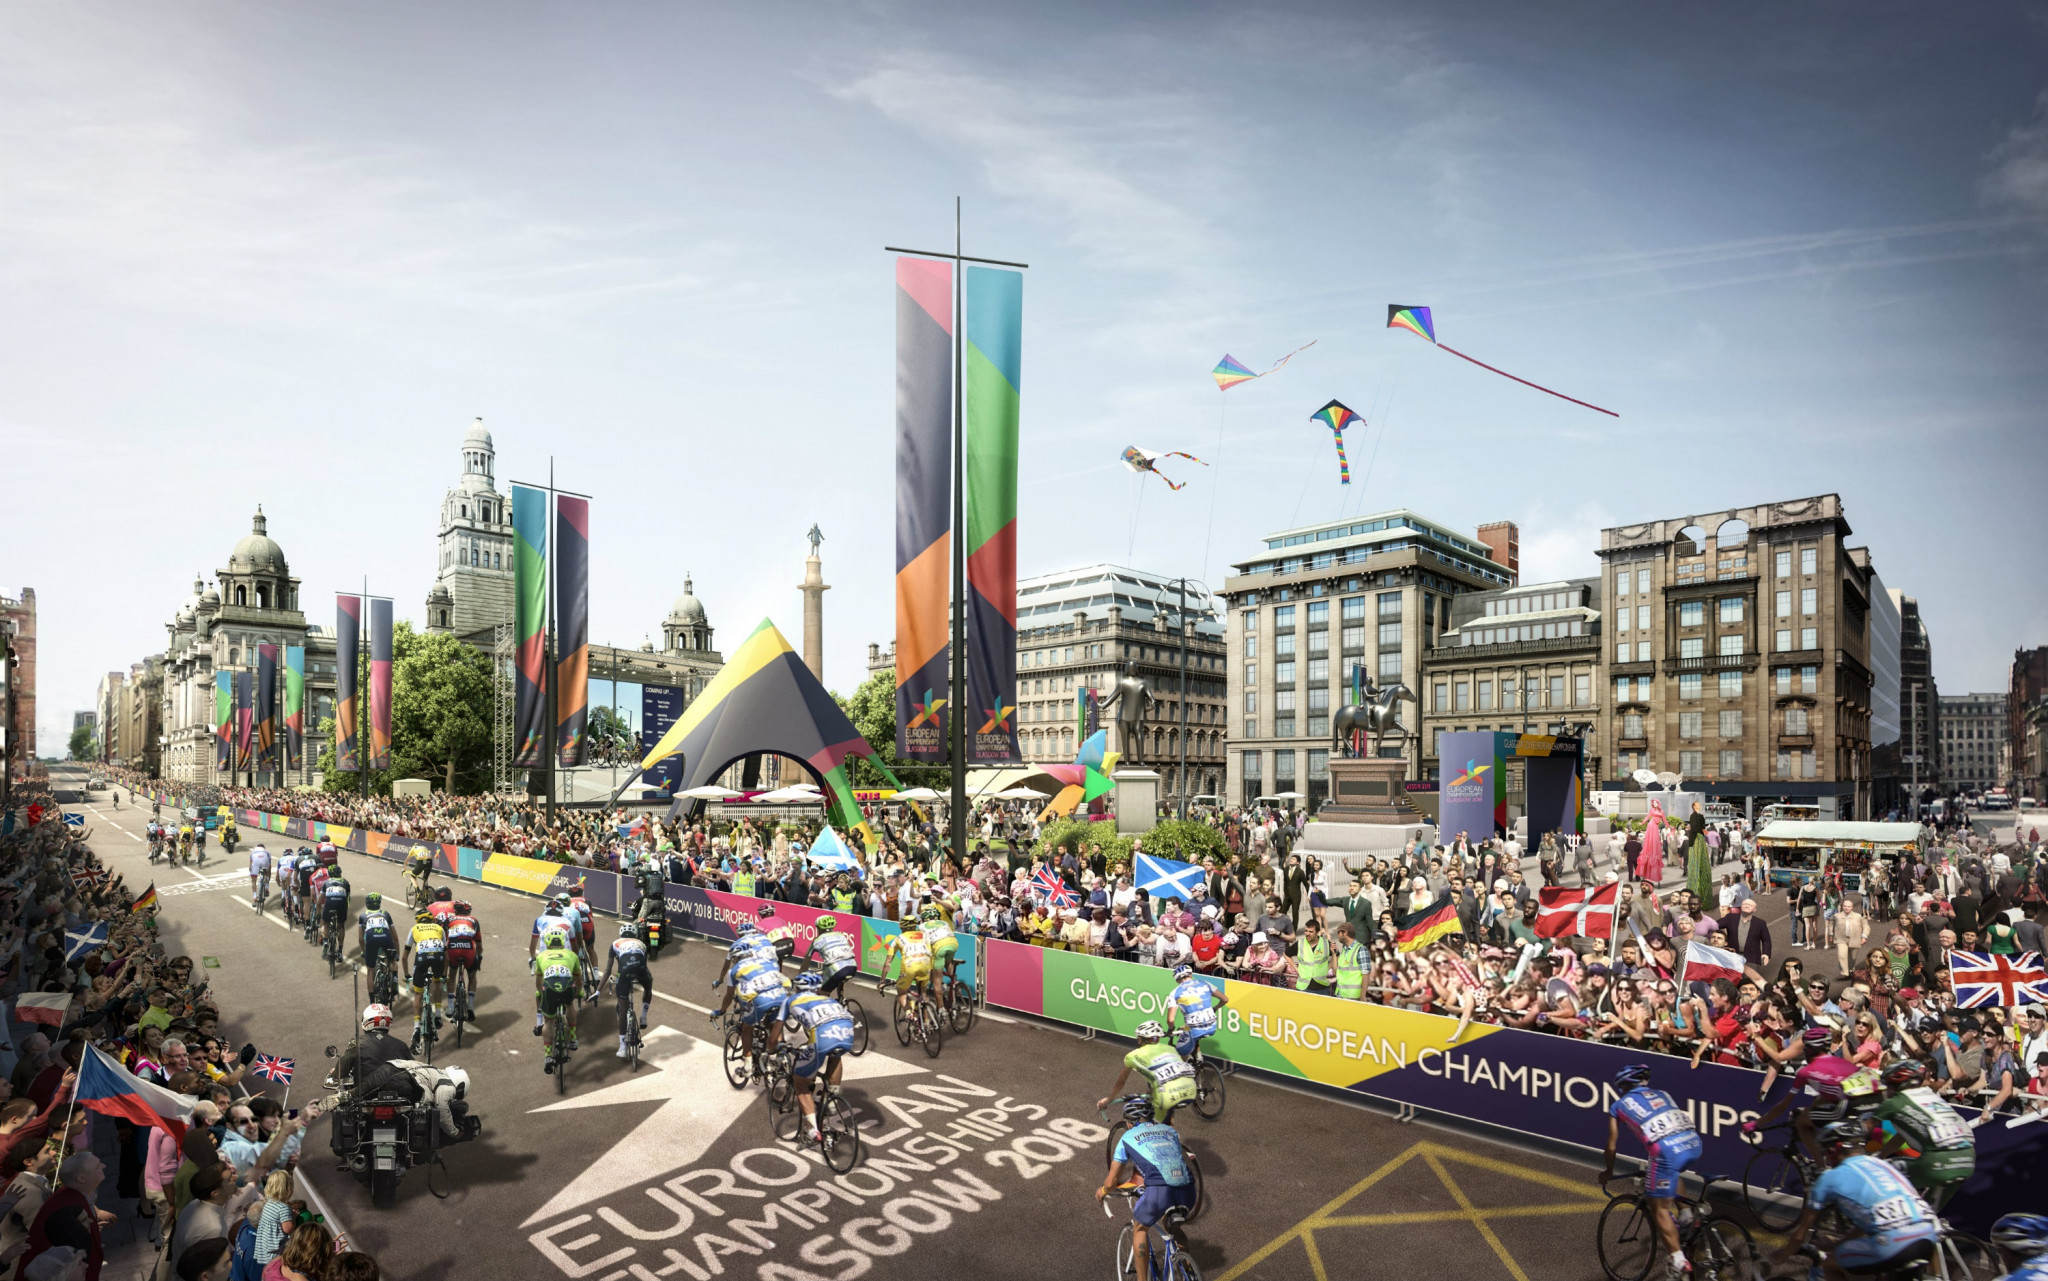 Glasgow 2018 organisers claim million people expected to be part of event with 100 days to go